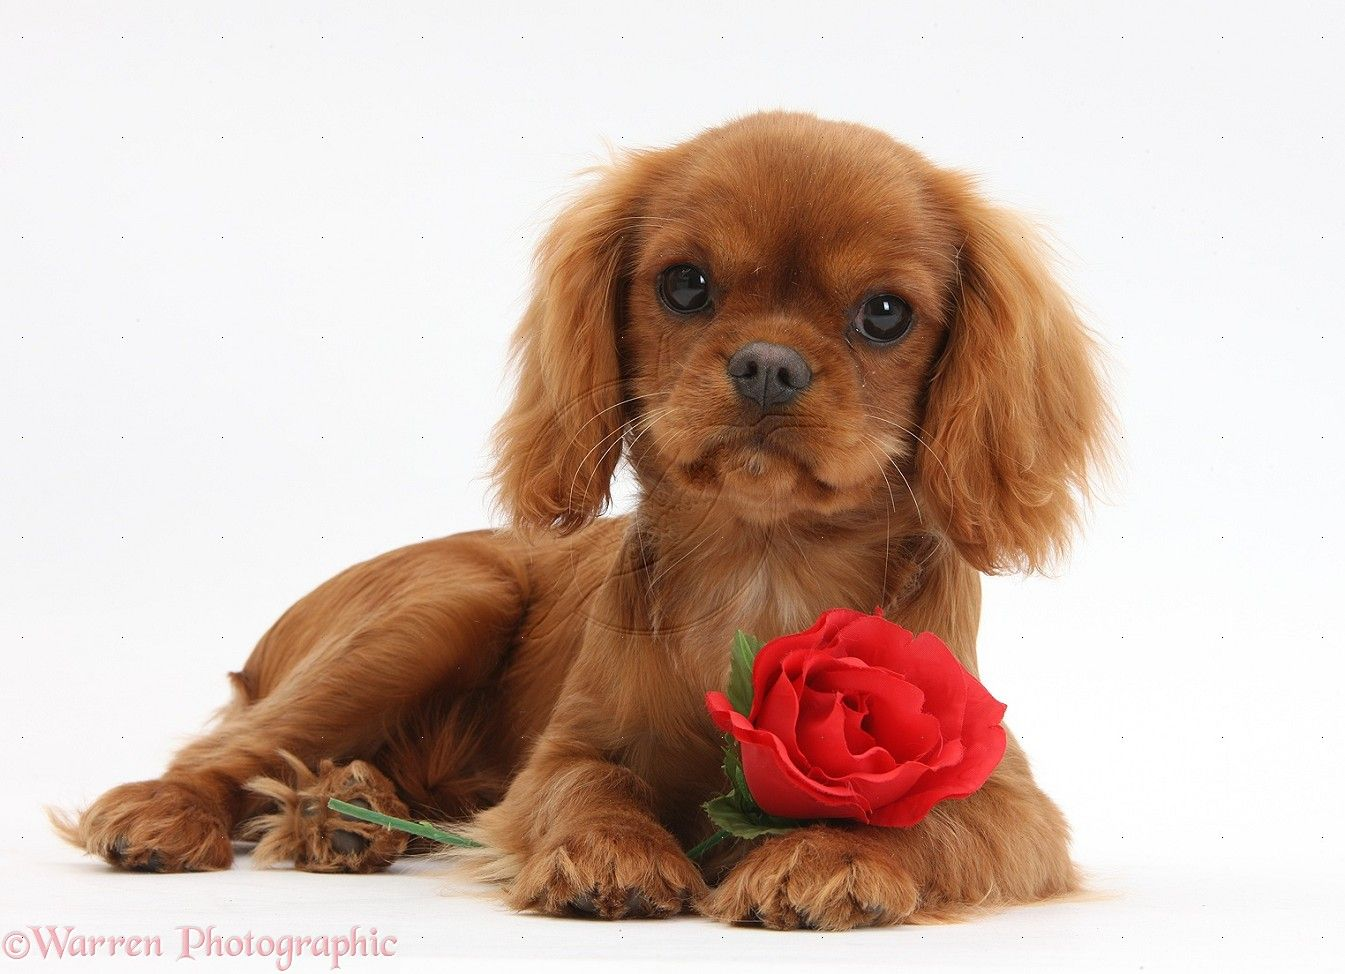 Rare Ruby Cavalier King Charles Spaniel Pup Animaux Adorables Chien Animaux